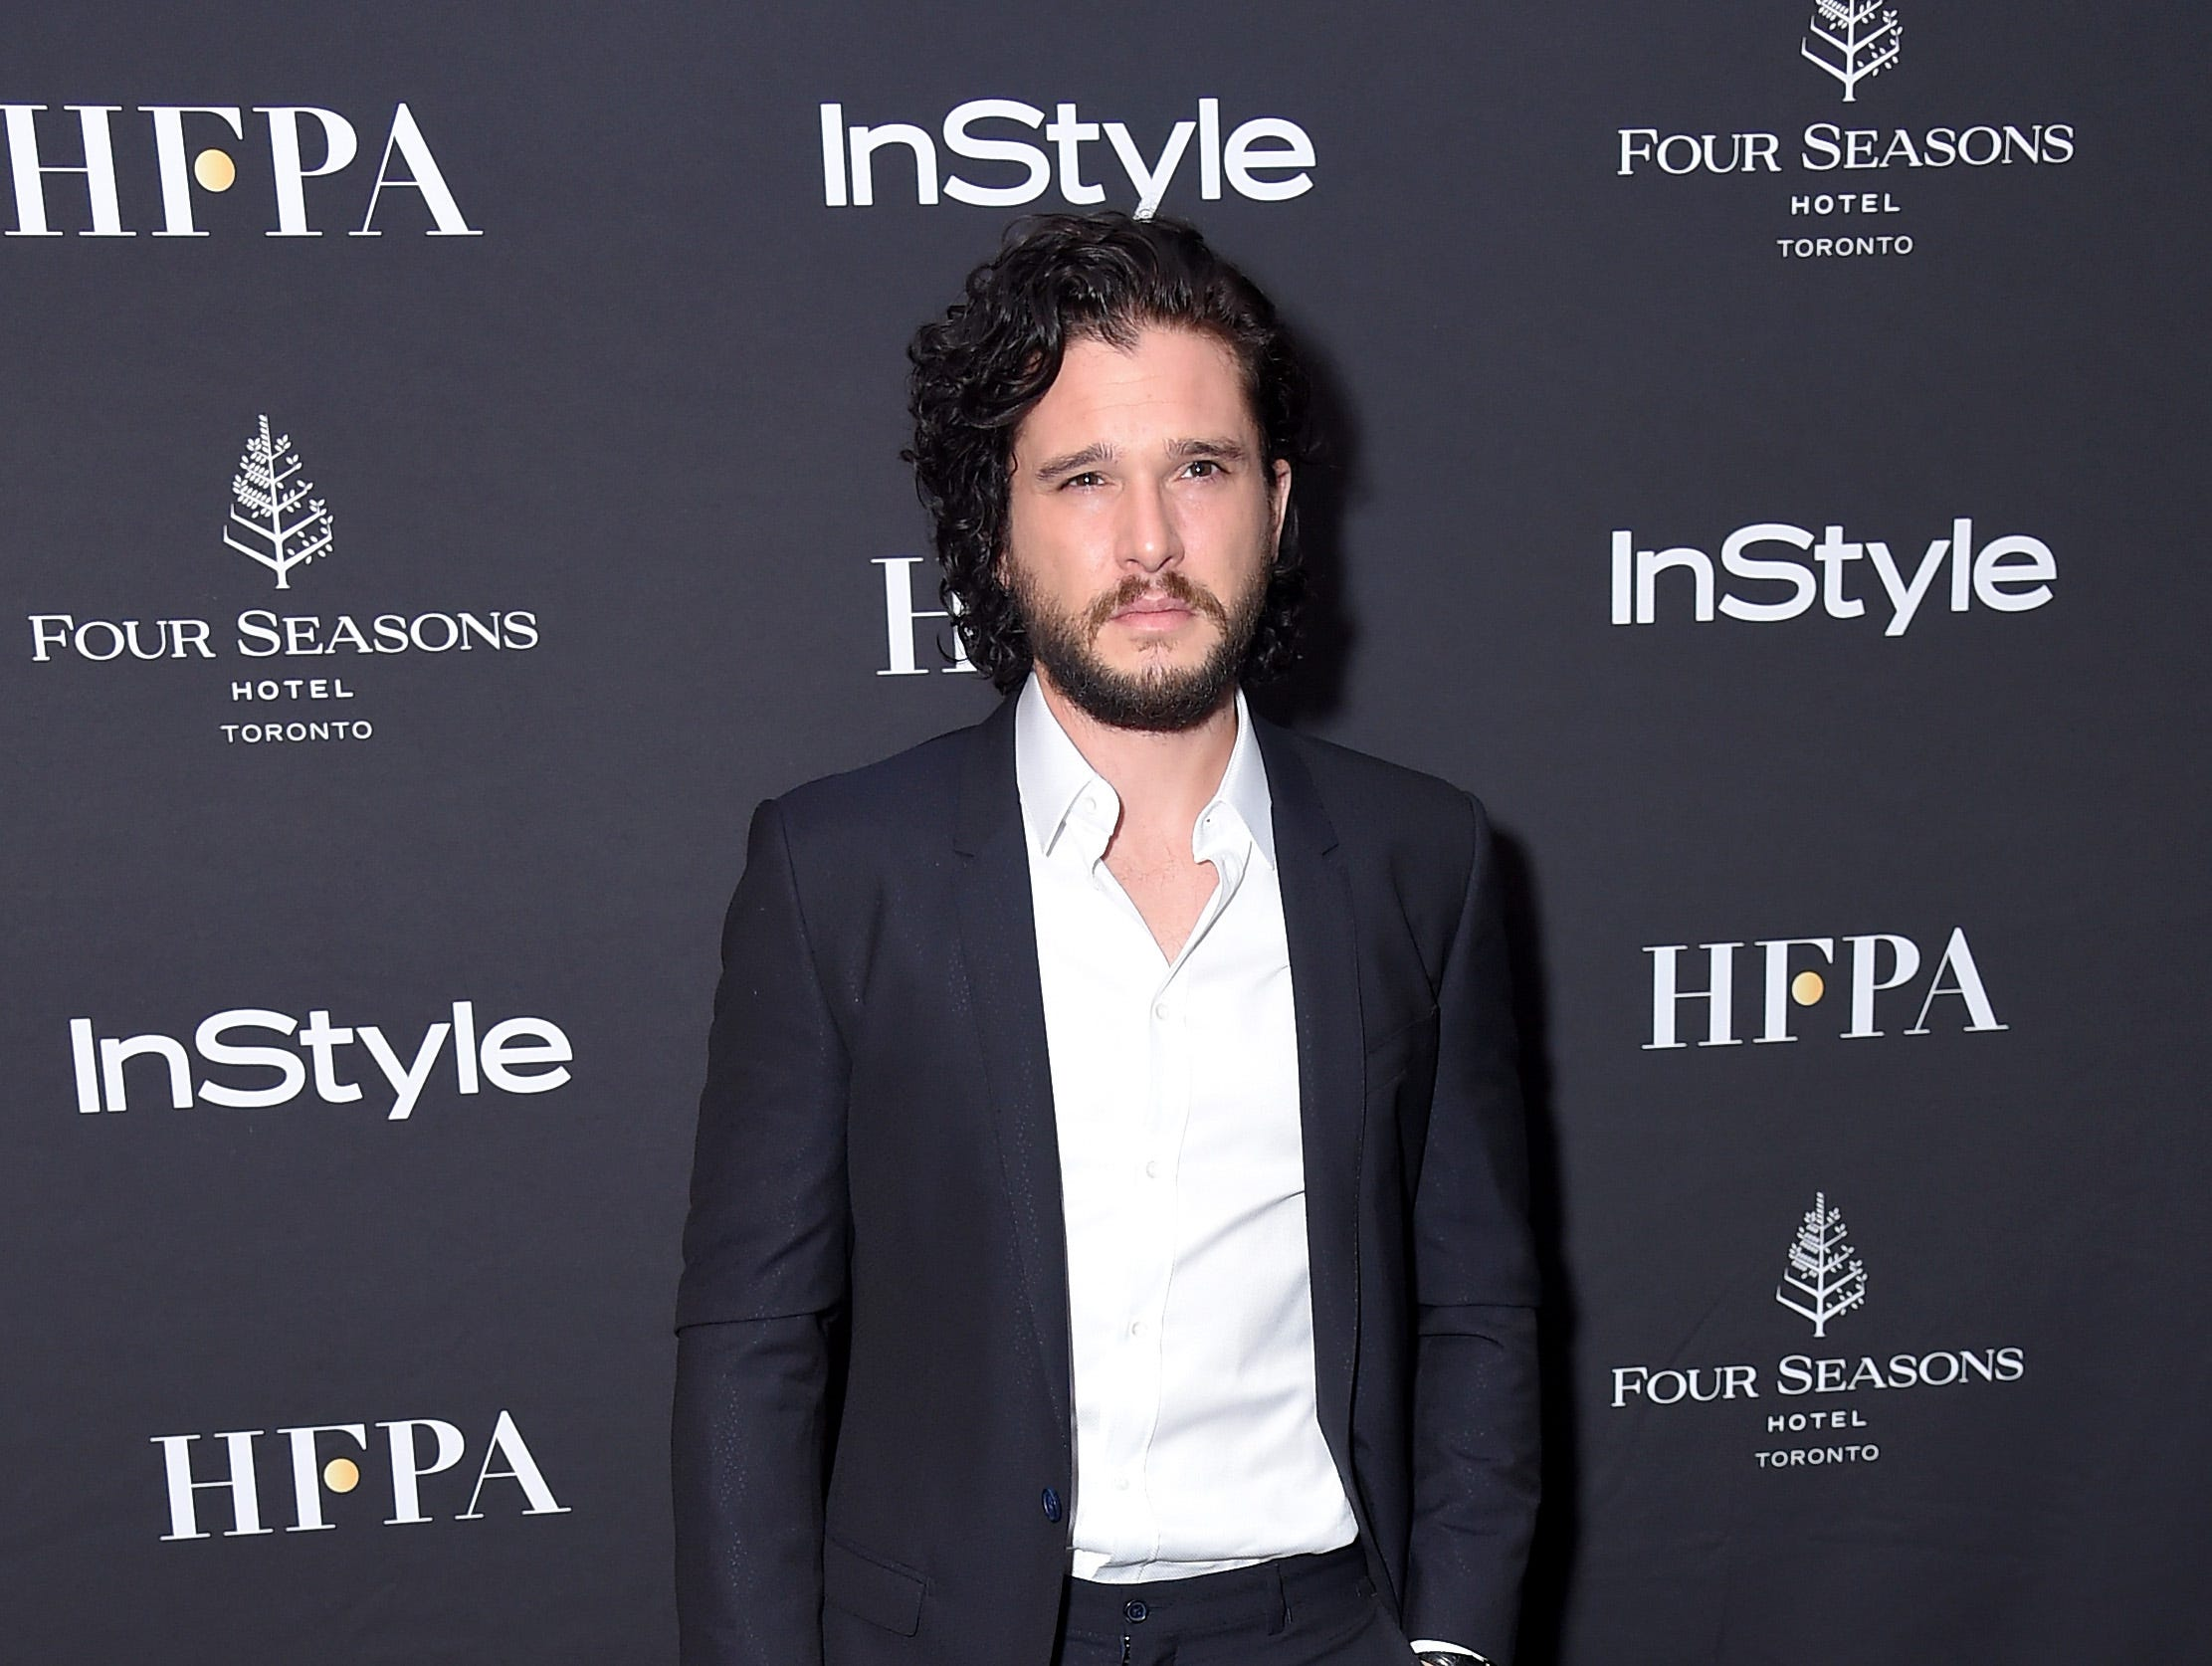 TORONTO, ON - SEPTEMBER 08:  Kit Harington attends The Hollywood Foreign Press Association and InStyle Party during 2018 Toronto International Film Festival at Four Seasons Hotel on September 8, 2018 in Toronto, Canada.  (Photo by Michael Loccisano/Getty Images,) ORG XMIT: 775218497 ORIG FILE ID: 1029587662